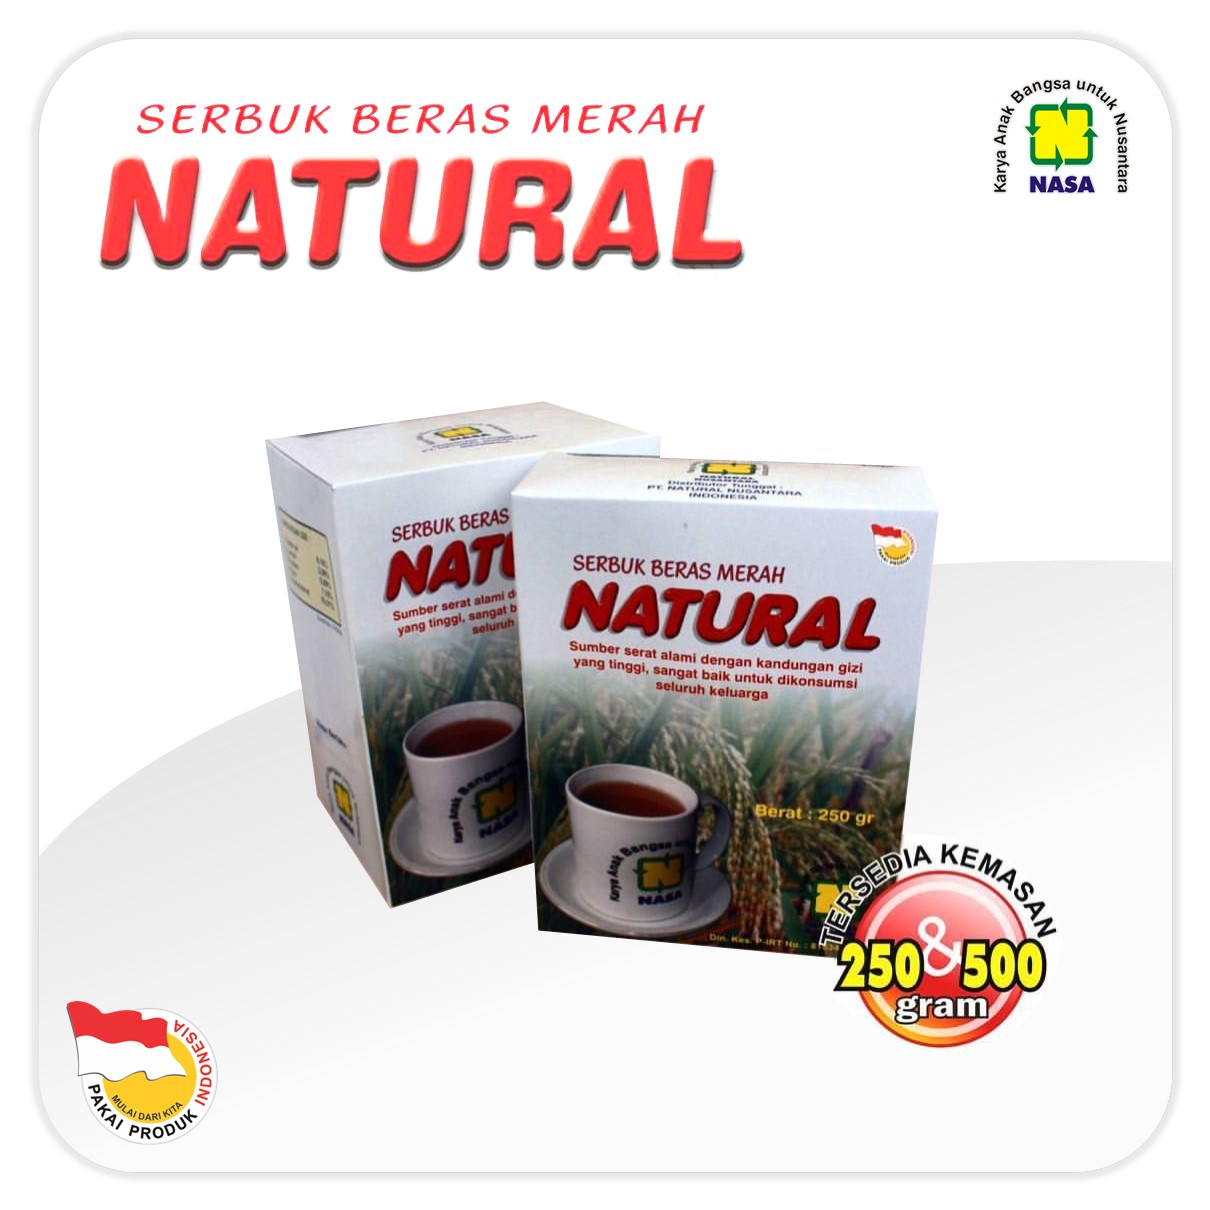 SBMN Beras Merah Natural Nasa